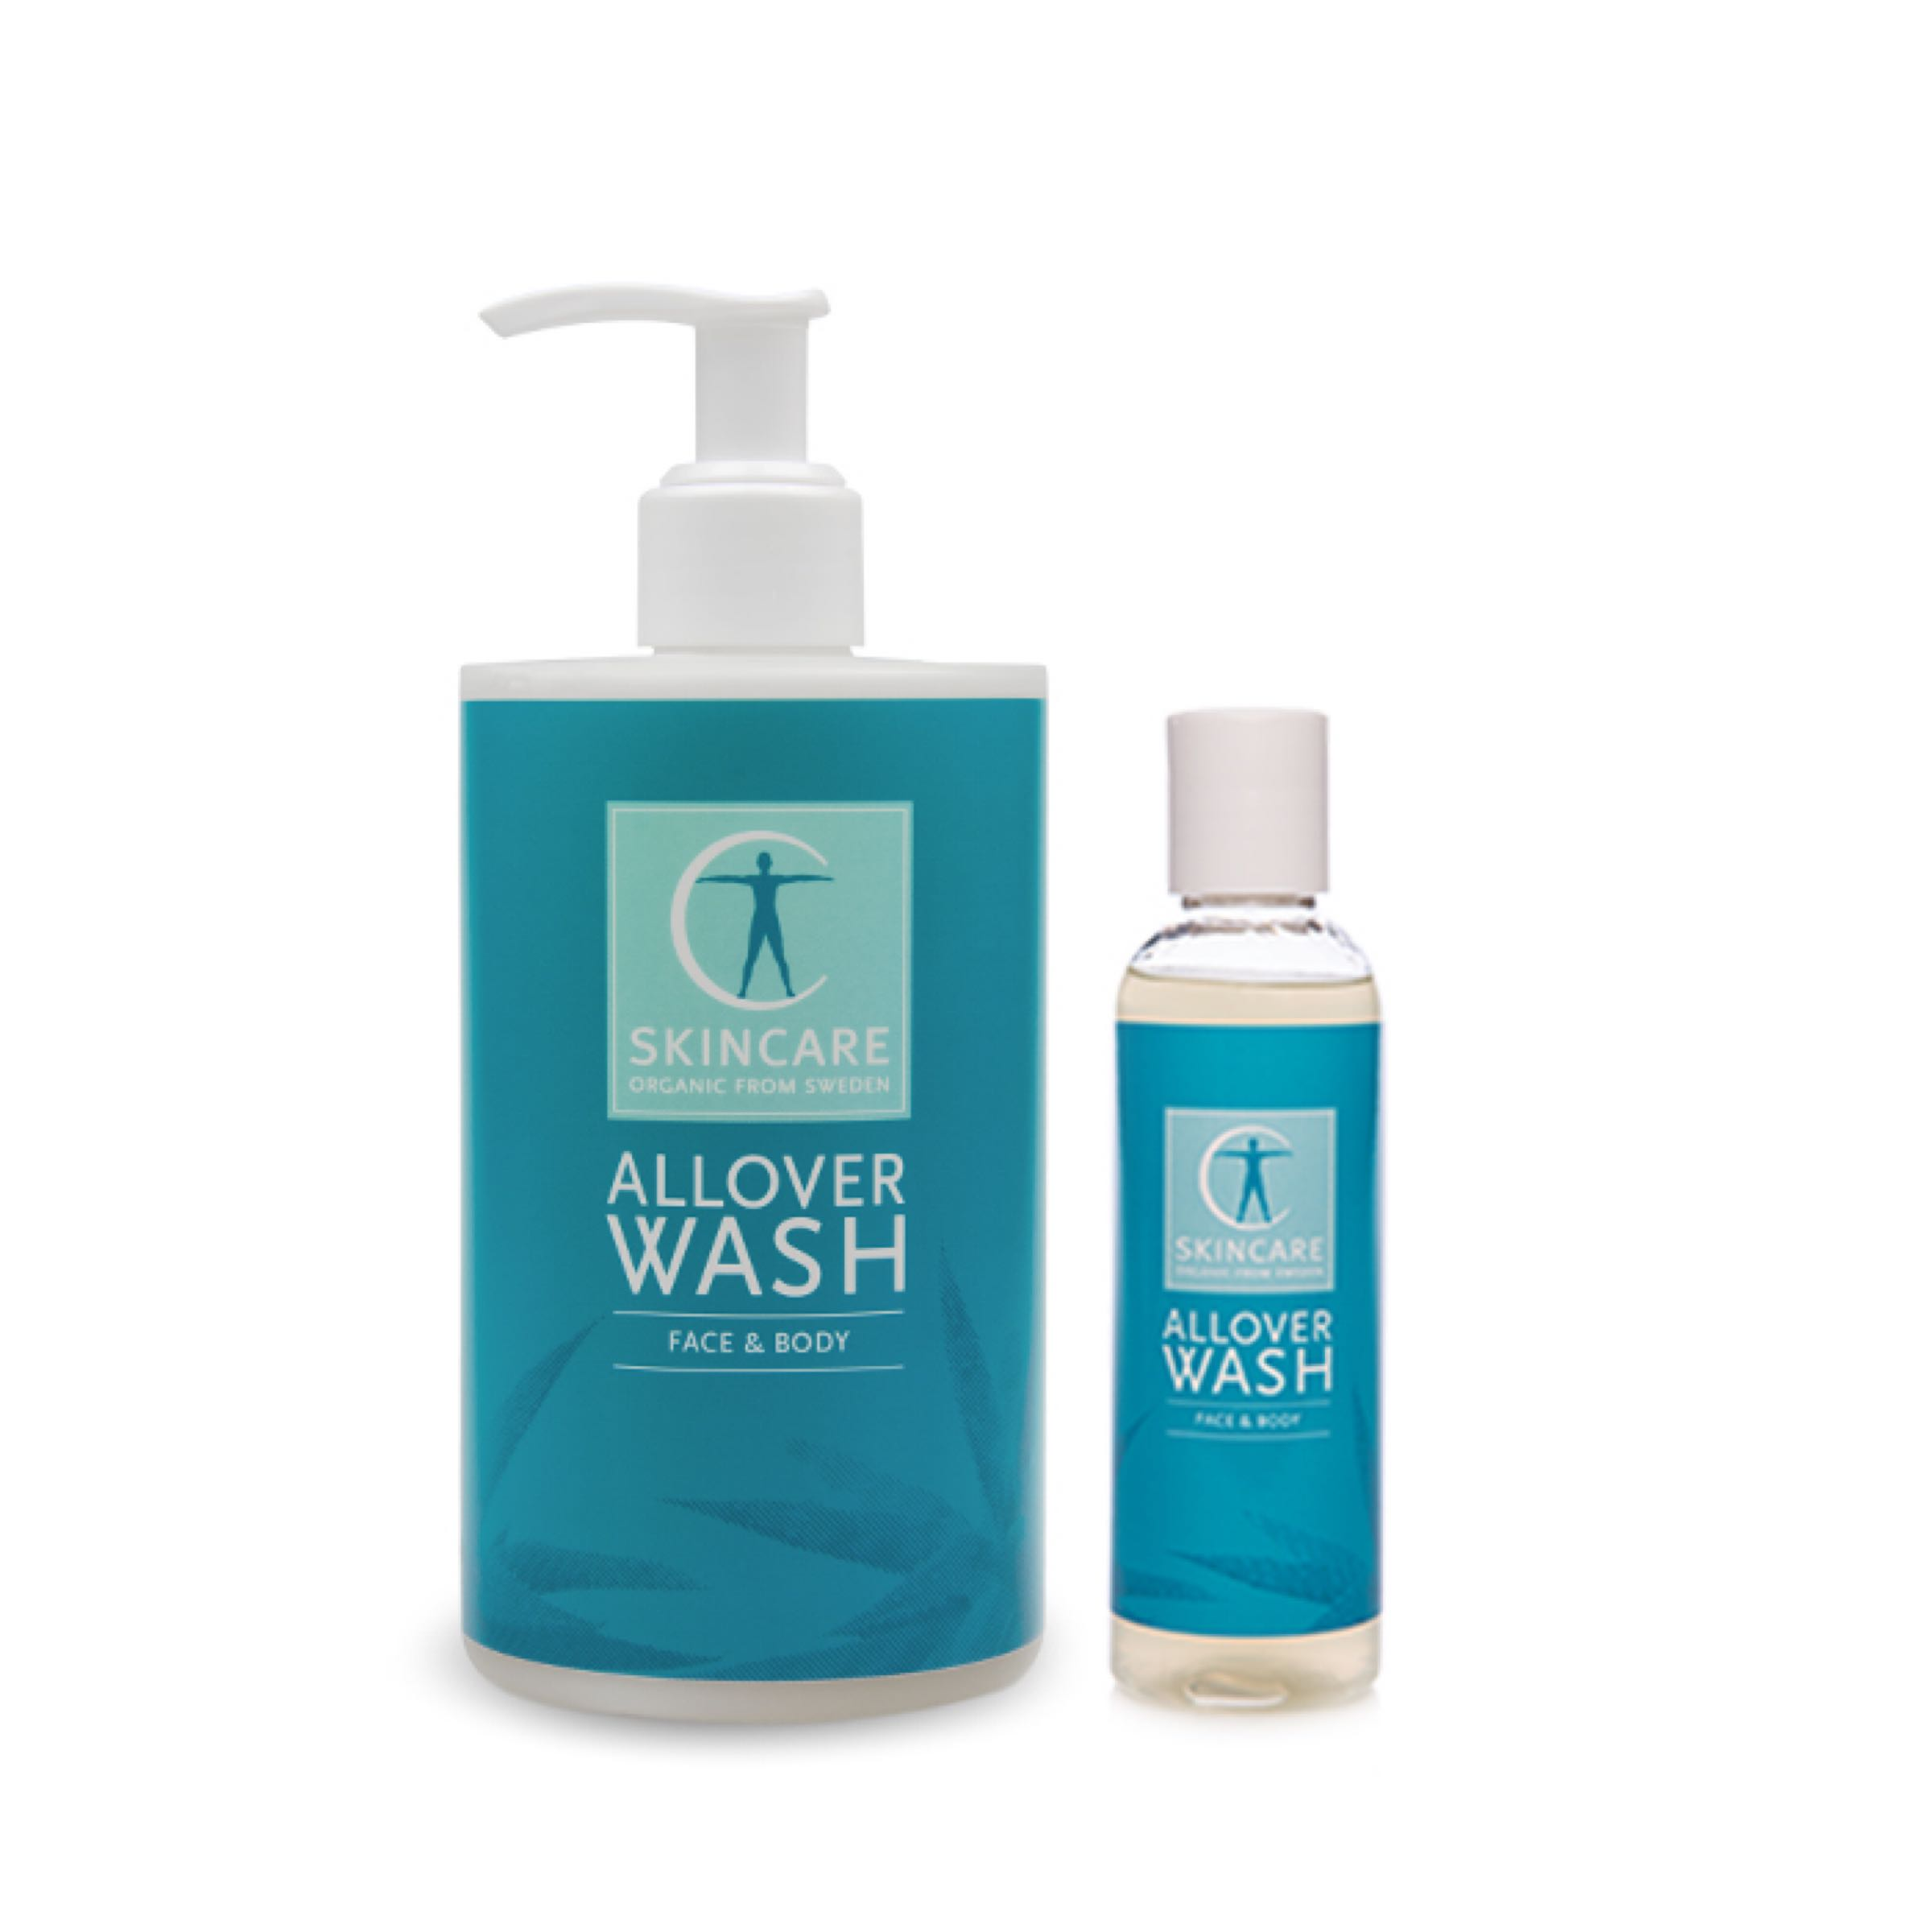 C Skincare Allover Wash